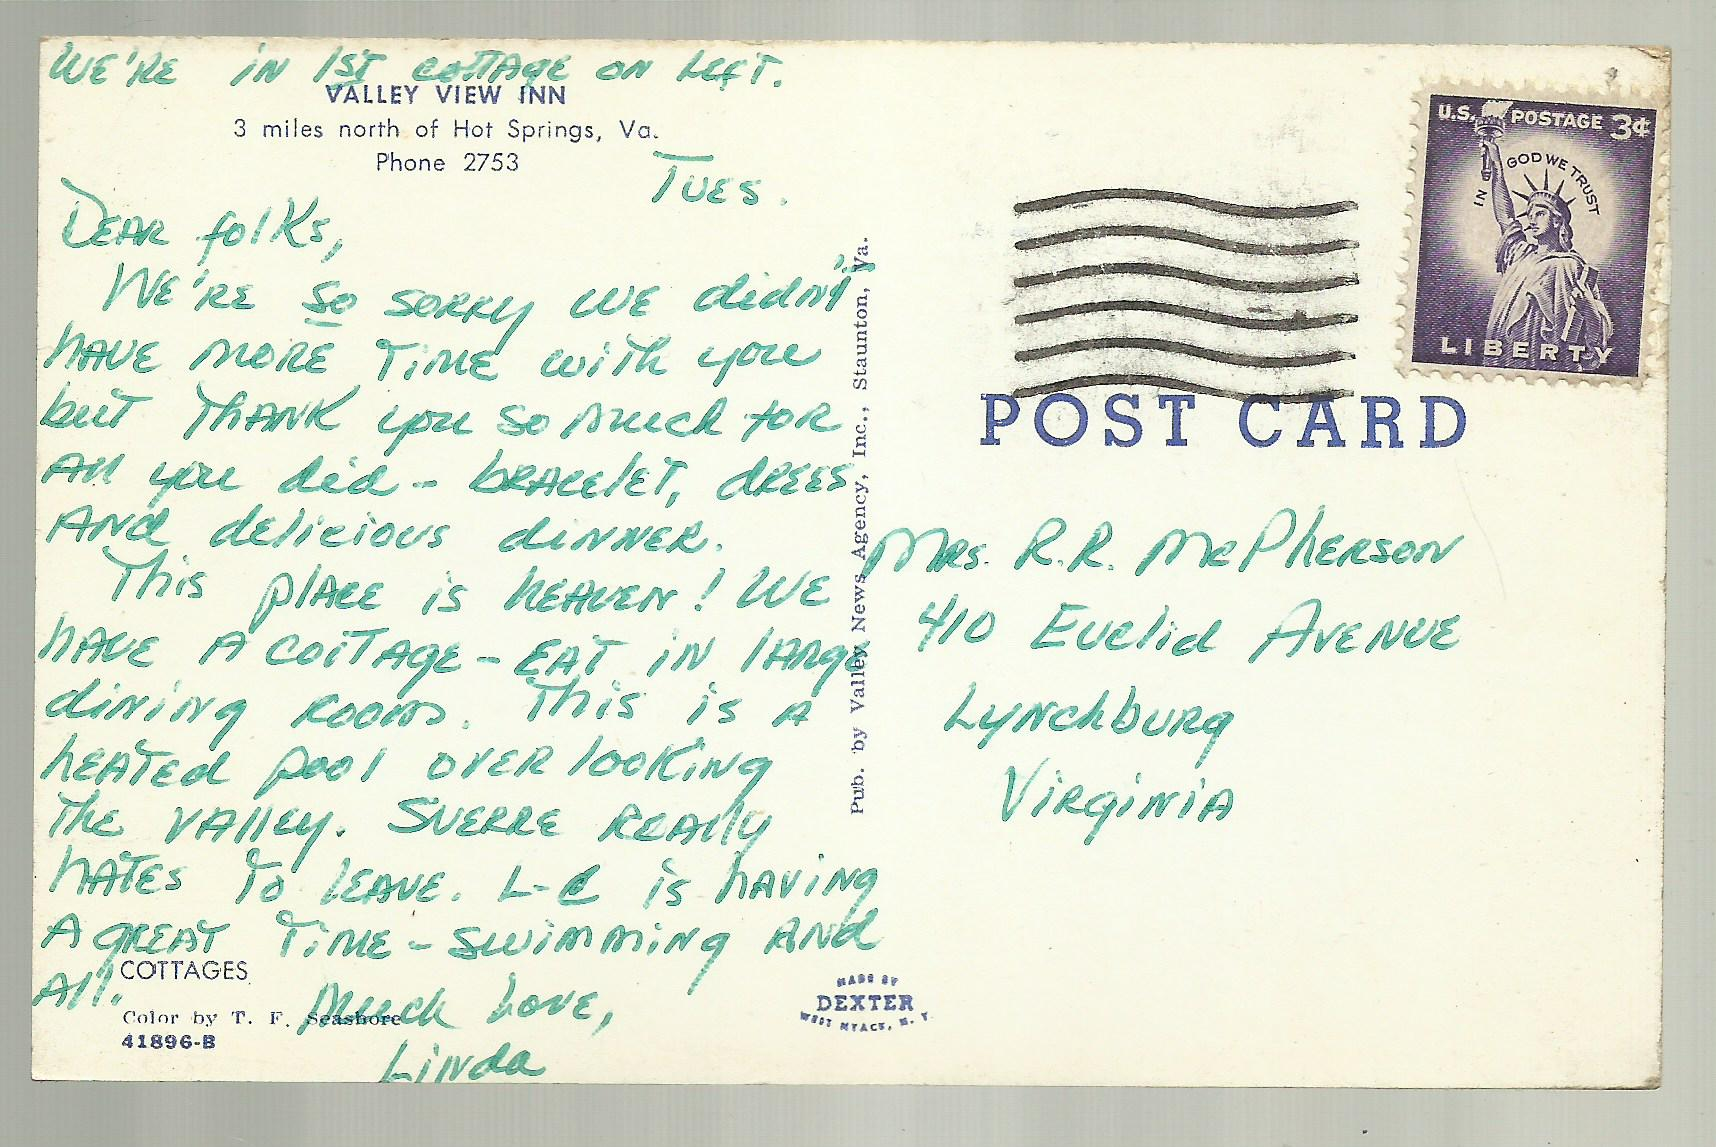 Cottages at Valley View Inn, Hot Springs, Virginia, Vintage Postcard -  Thumbnail 1